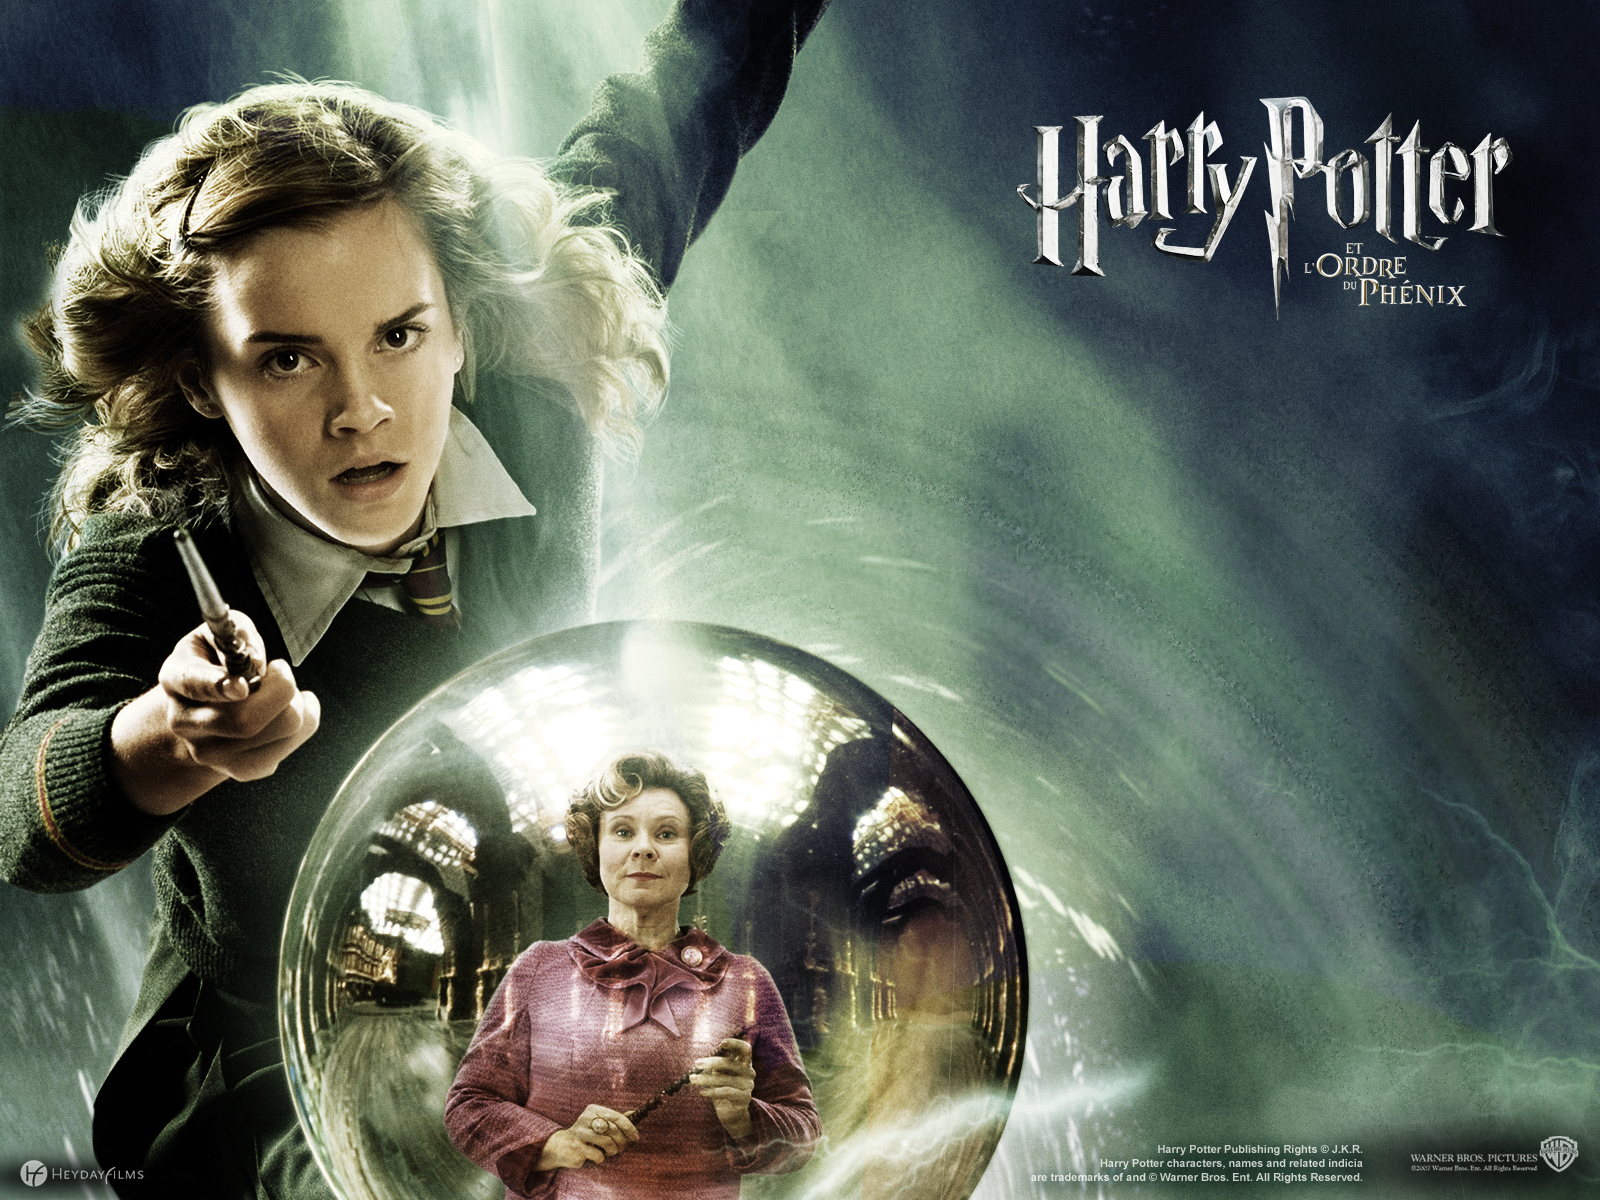 Harry Potter And The Order Of The Phoenix 2007 Hermione Granger Wallpaper 23219532 Fanpop